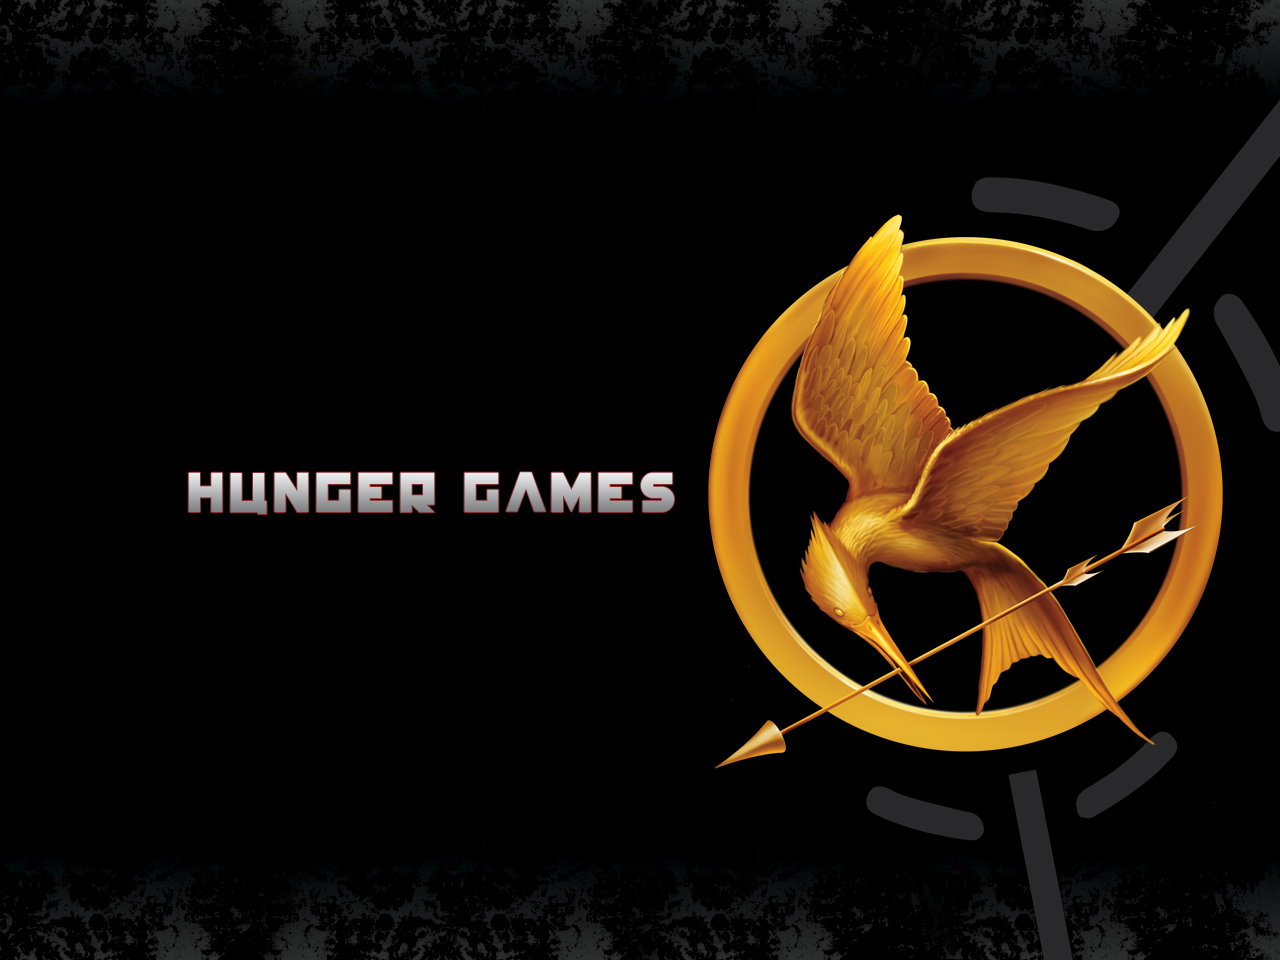 https://i1.wp.com/images1.fanpop.com/images/photos/2600000/The-Hunger-Games-the-hunger-game-trilogy-2624991-1280-960.jpg